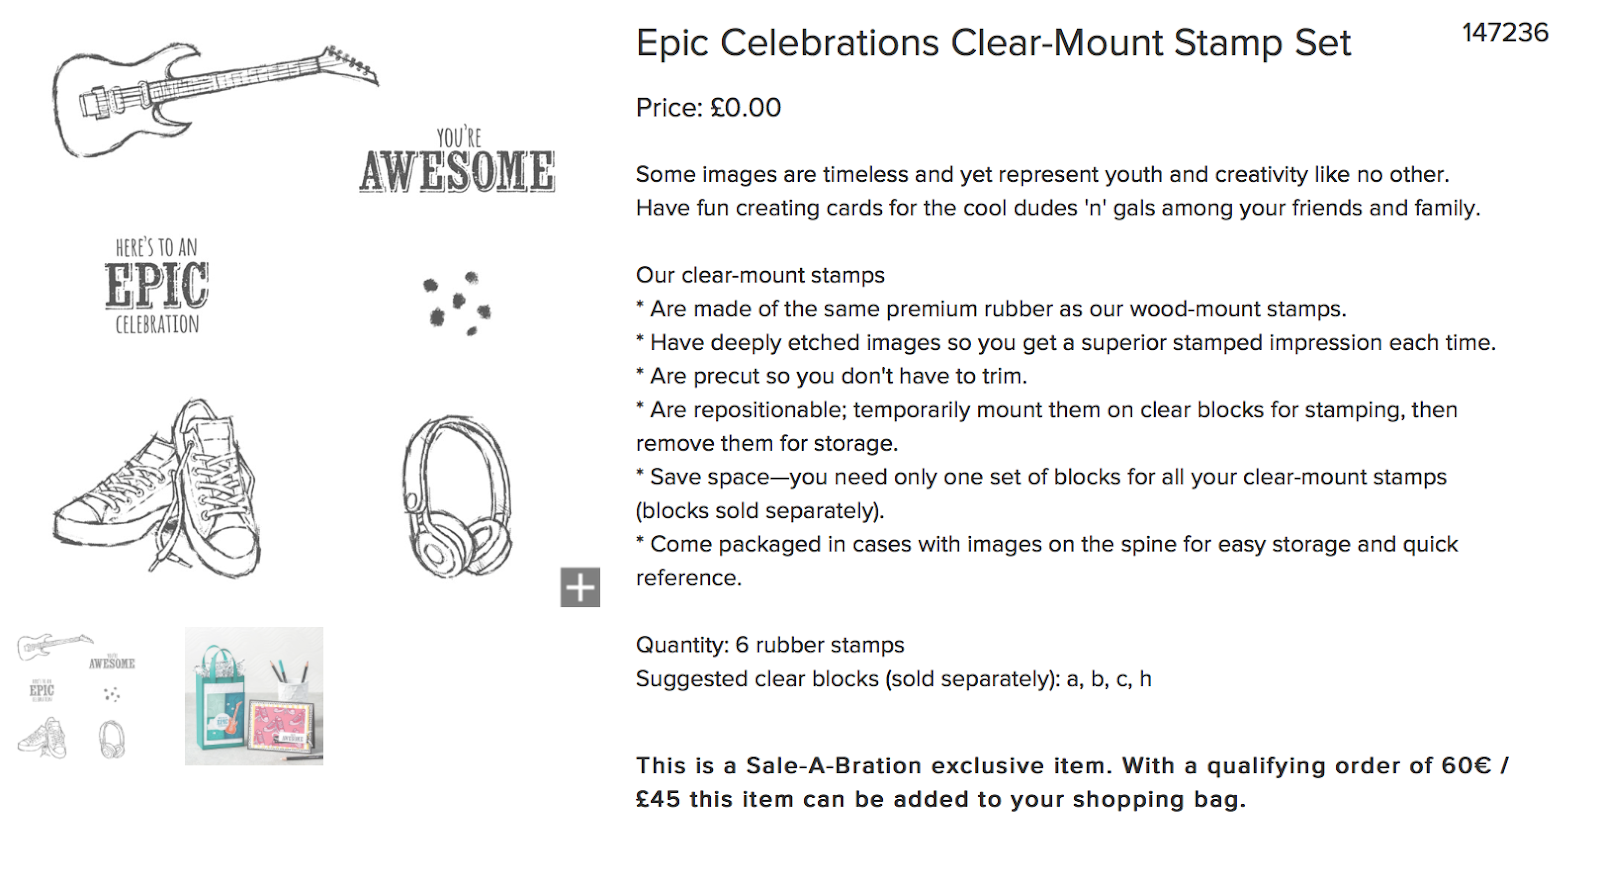 Stampin up Epic Celebrations